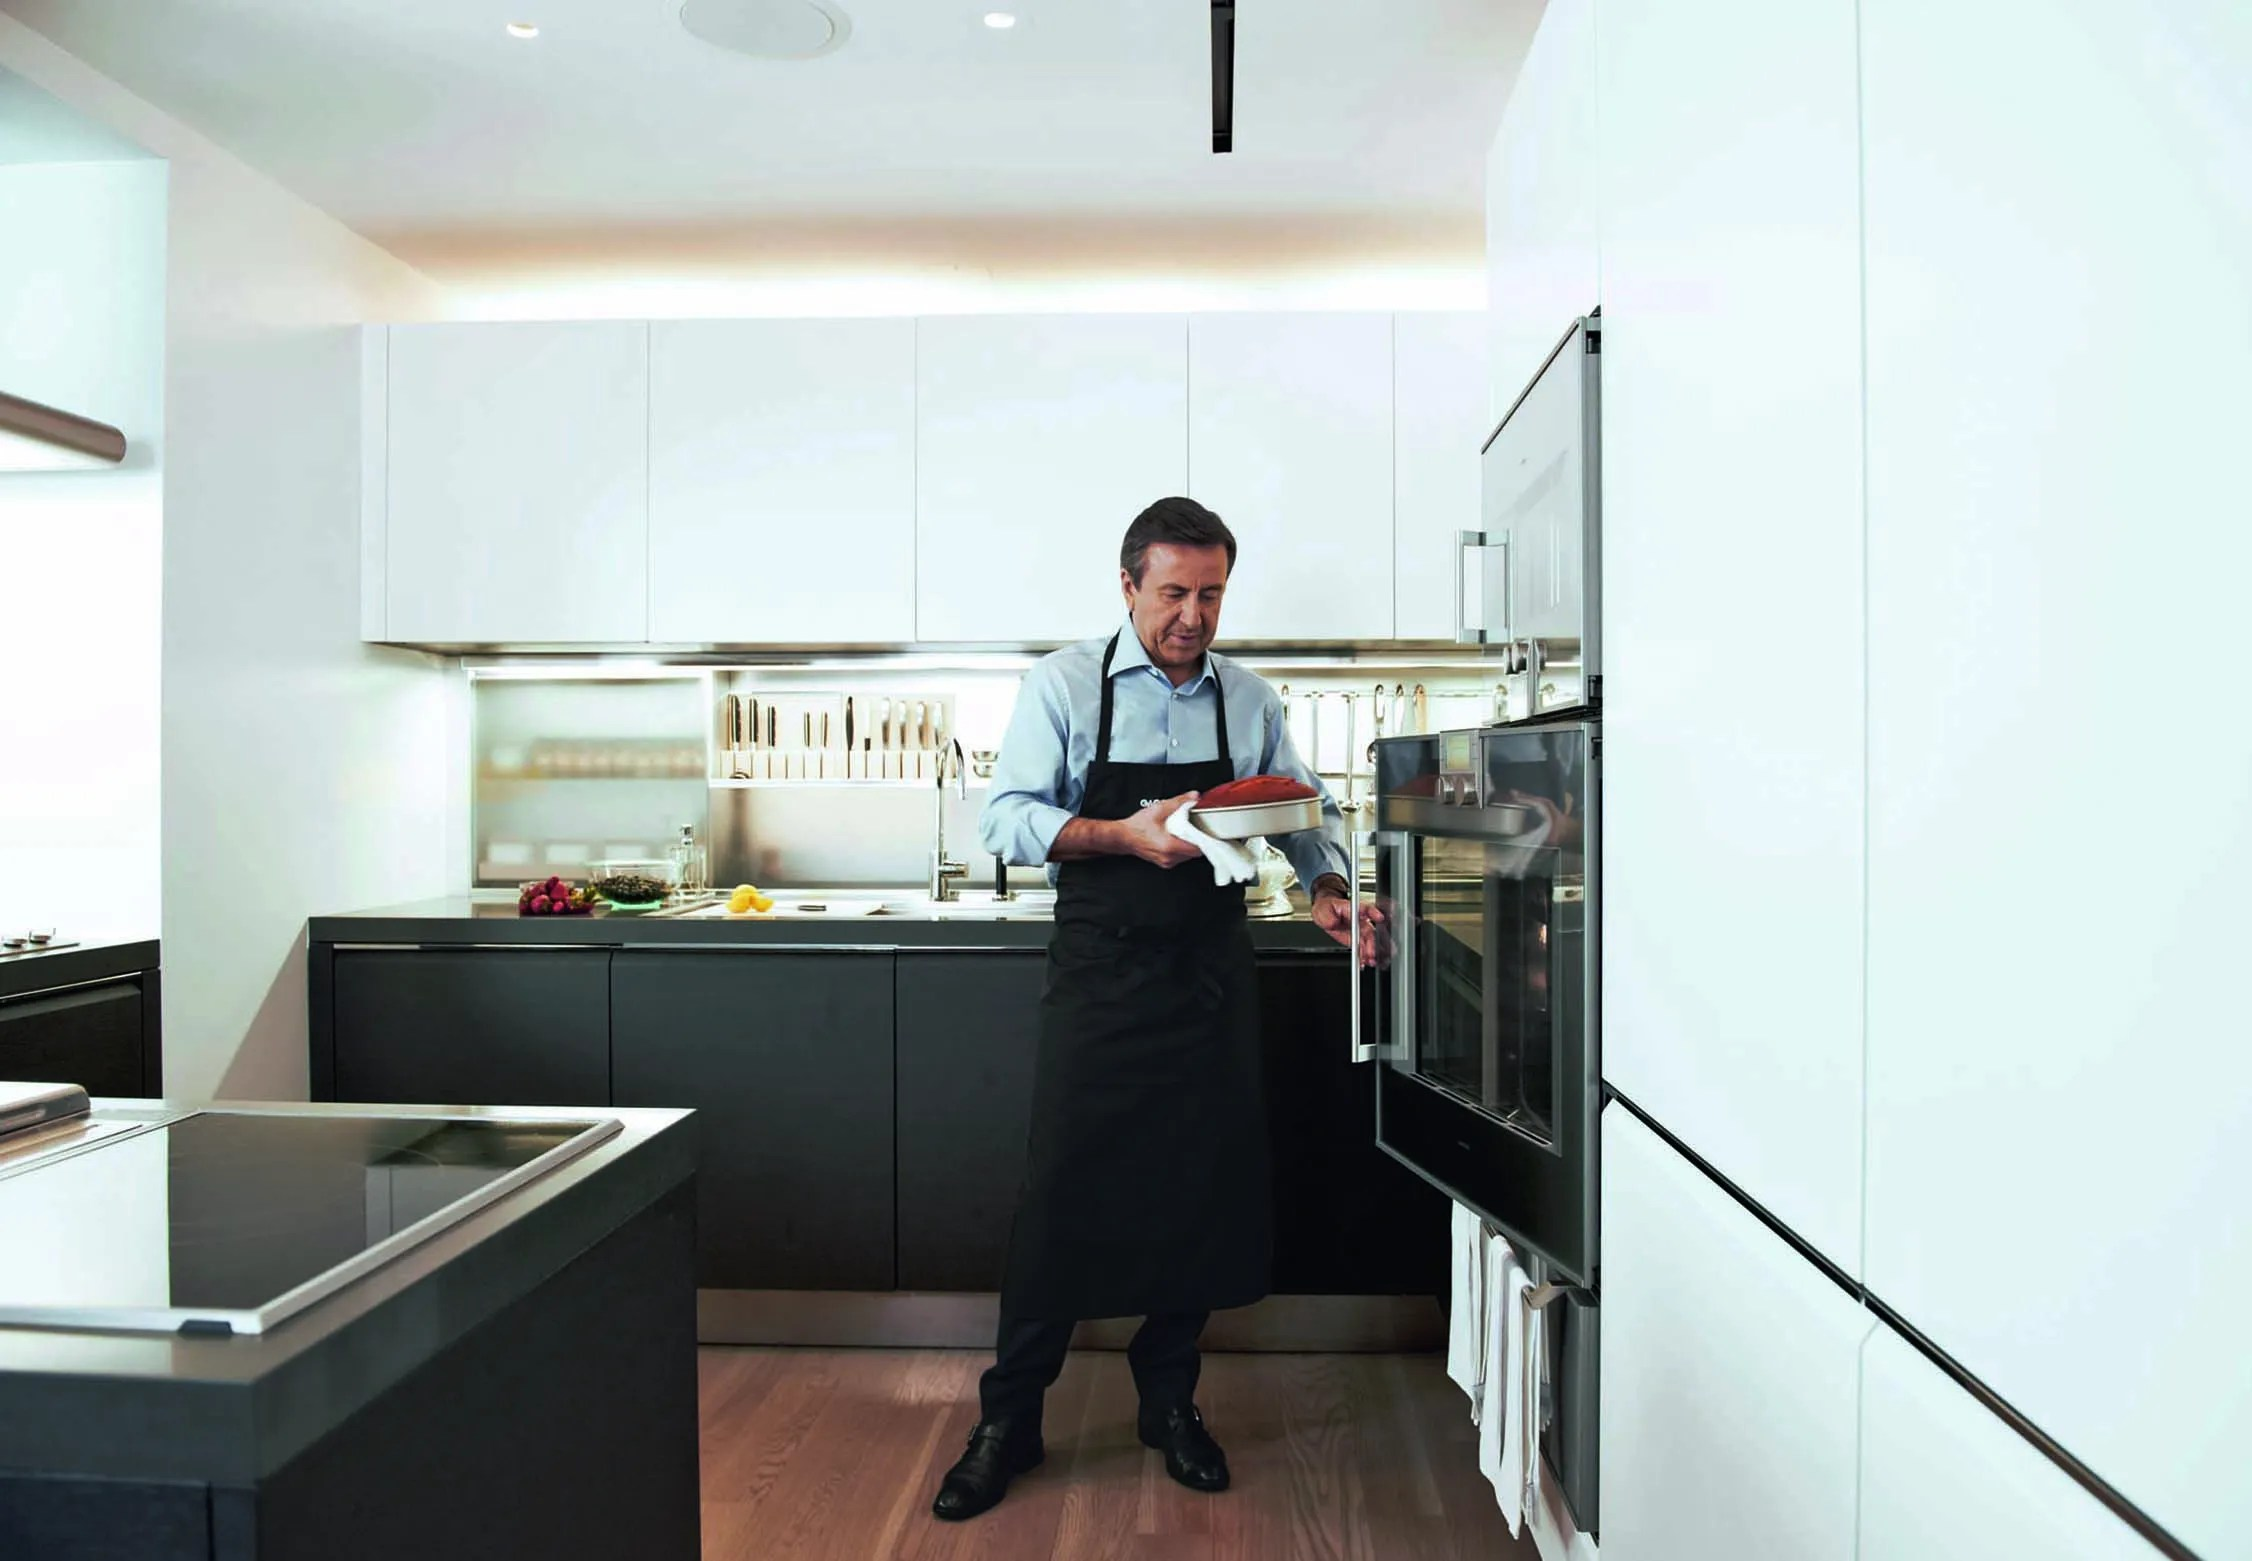 Kitchen Renovation Ideas Your Home